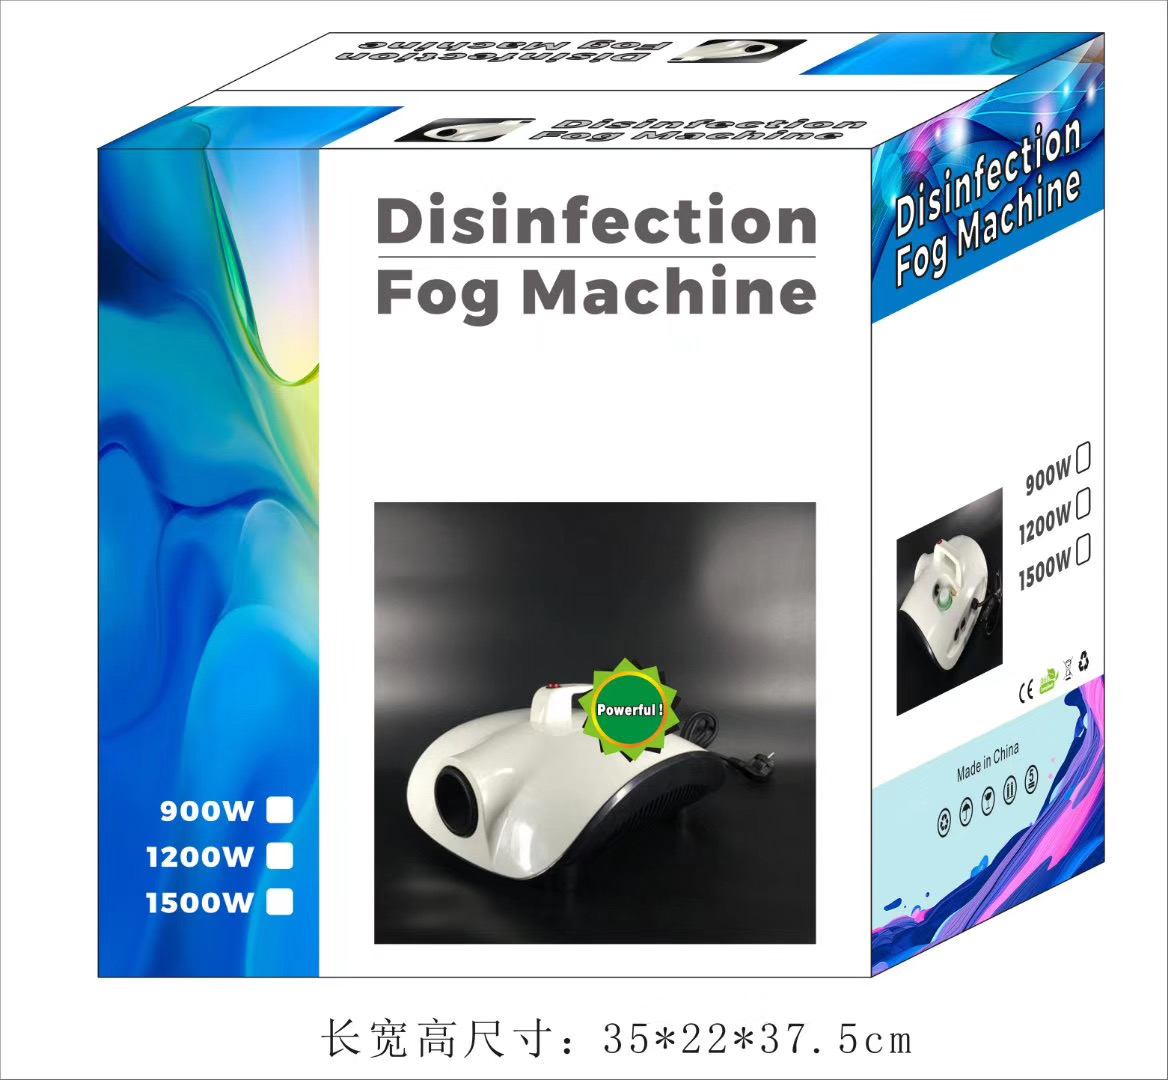 750W Atomizer Disinfection Smoke Machine